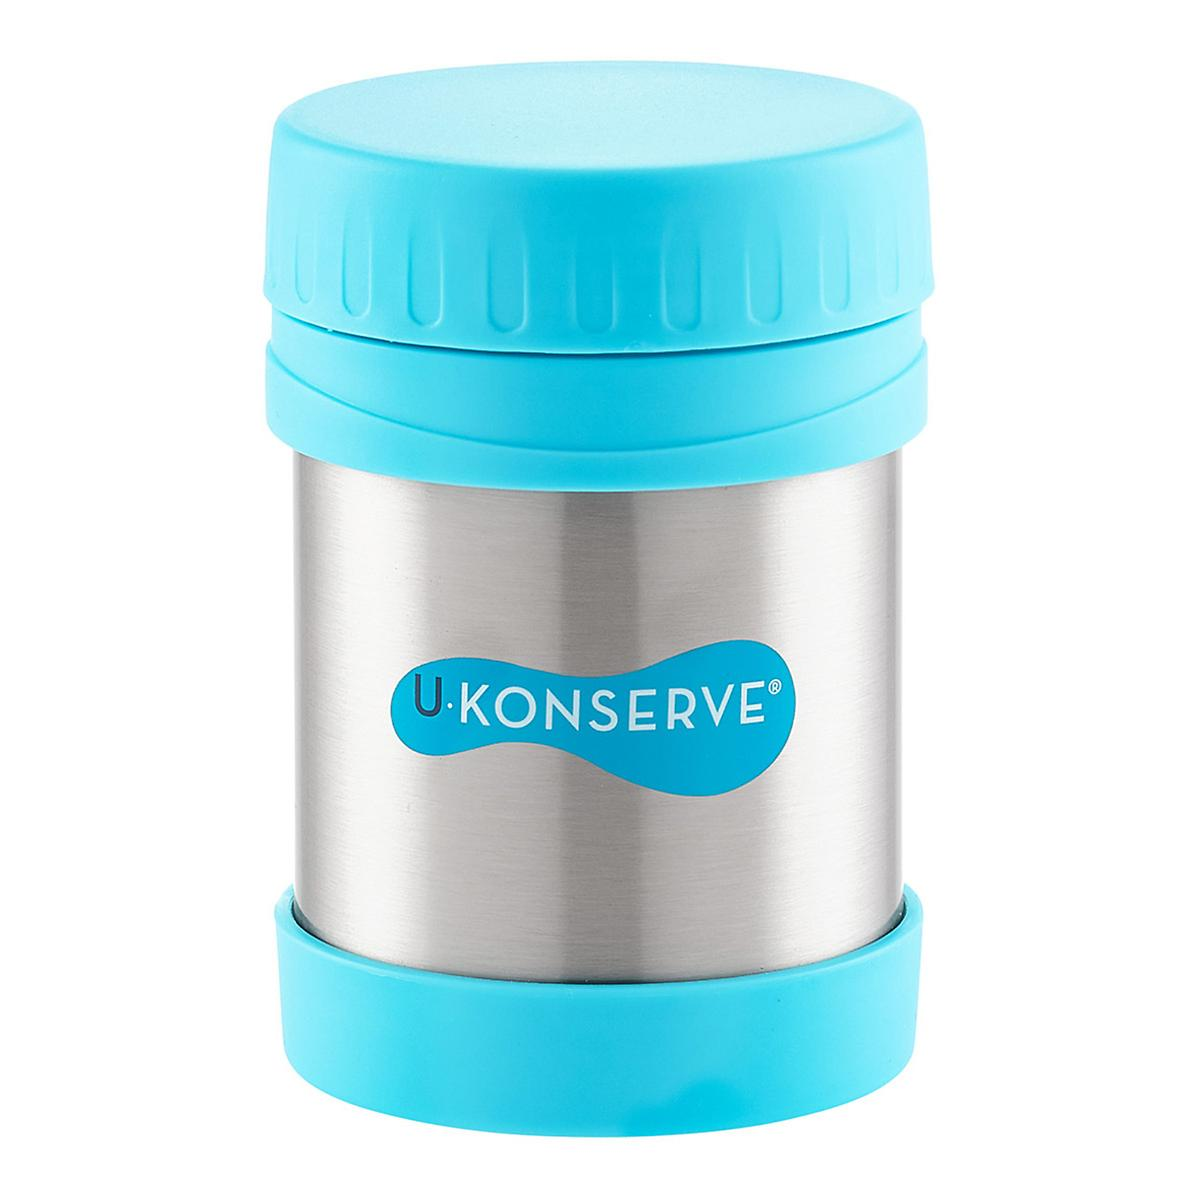 12 oz. Sky Blue Insulated Food Jar